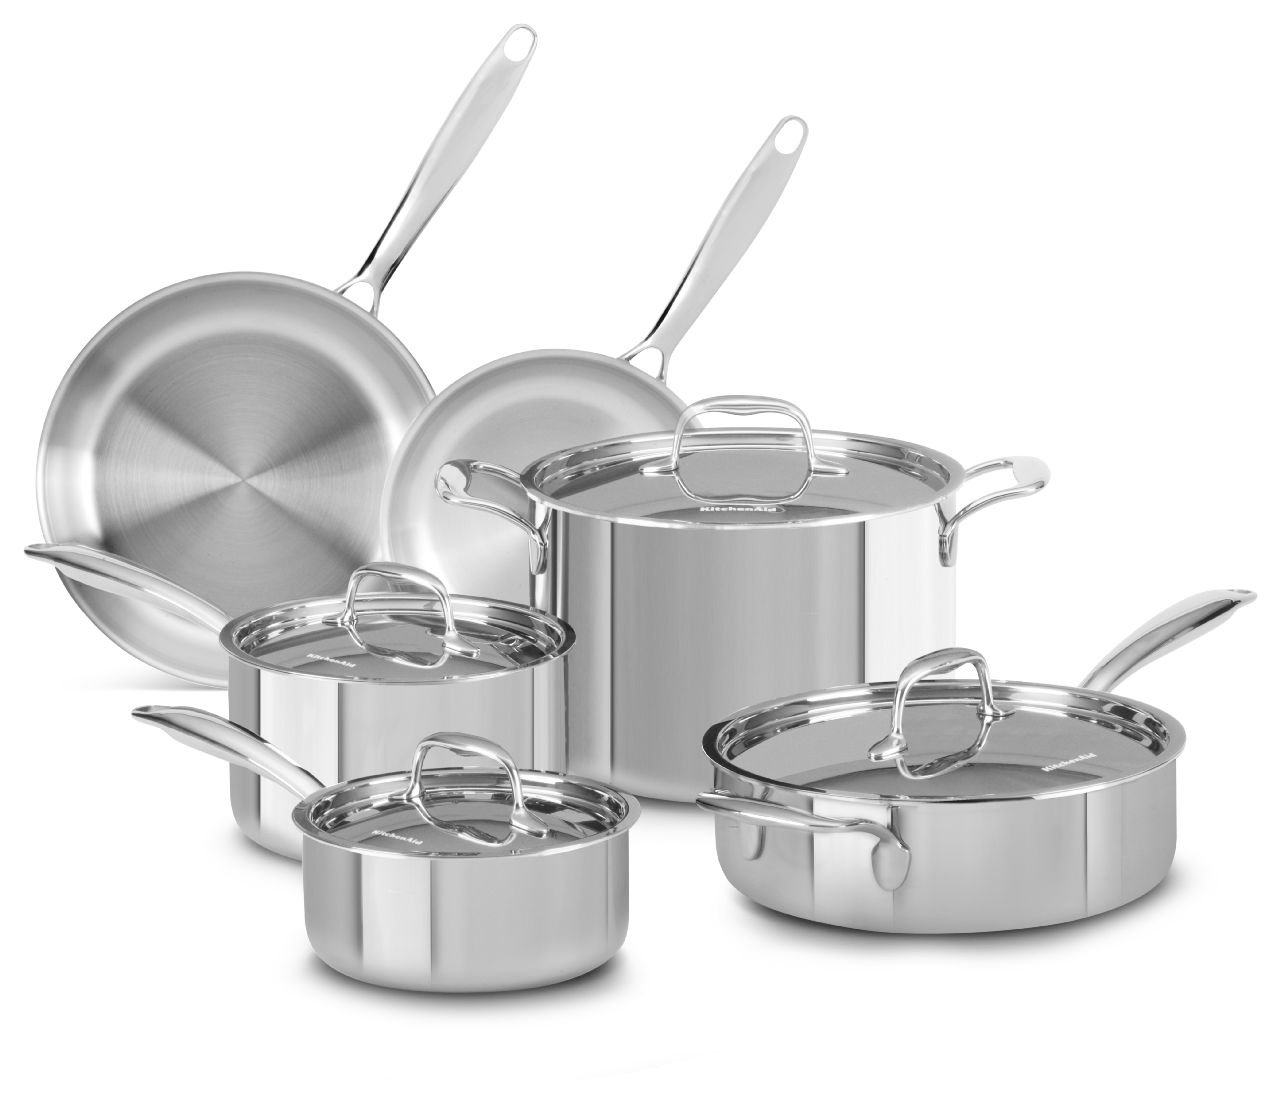 Amazon Com Kitchenaid Kctsslst Tri Ply Stainless Steel  Piece Cookware Set Stainless Steel Kitchen Dining